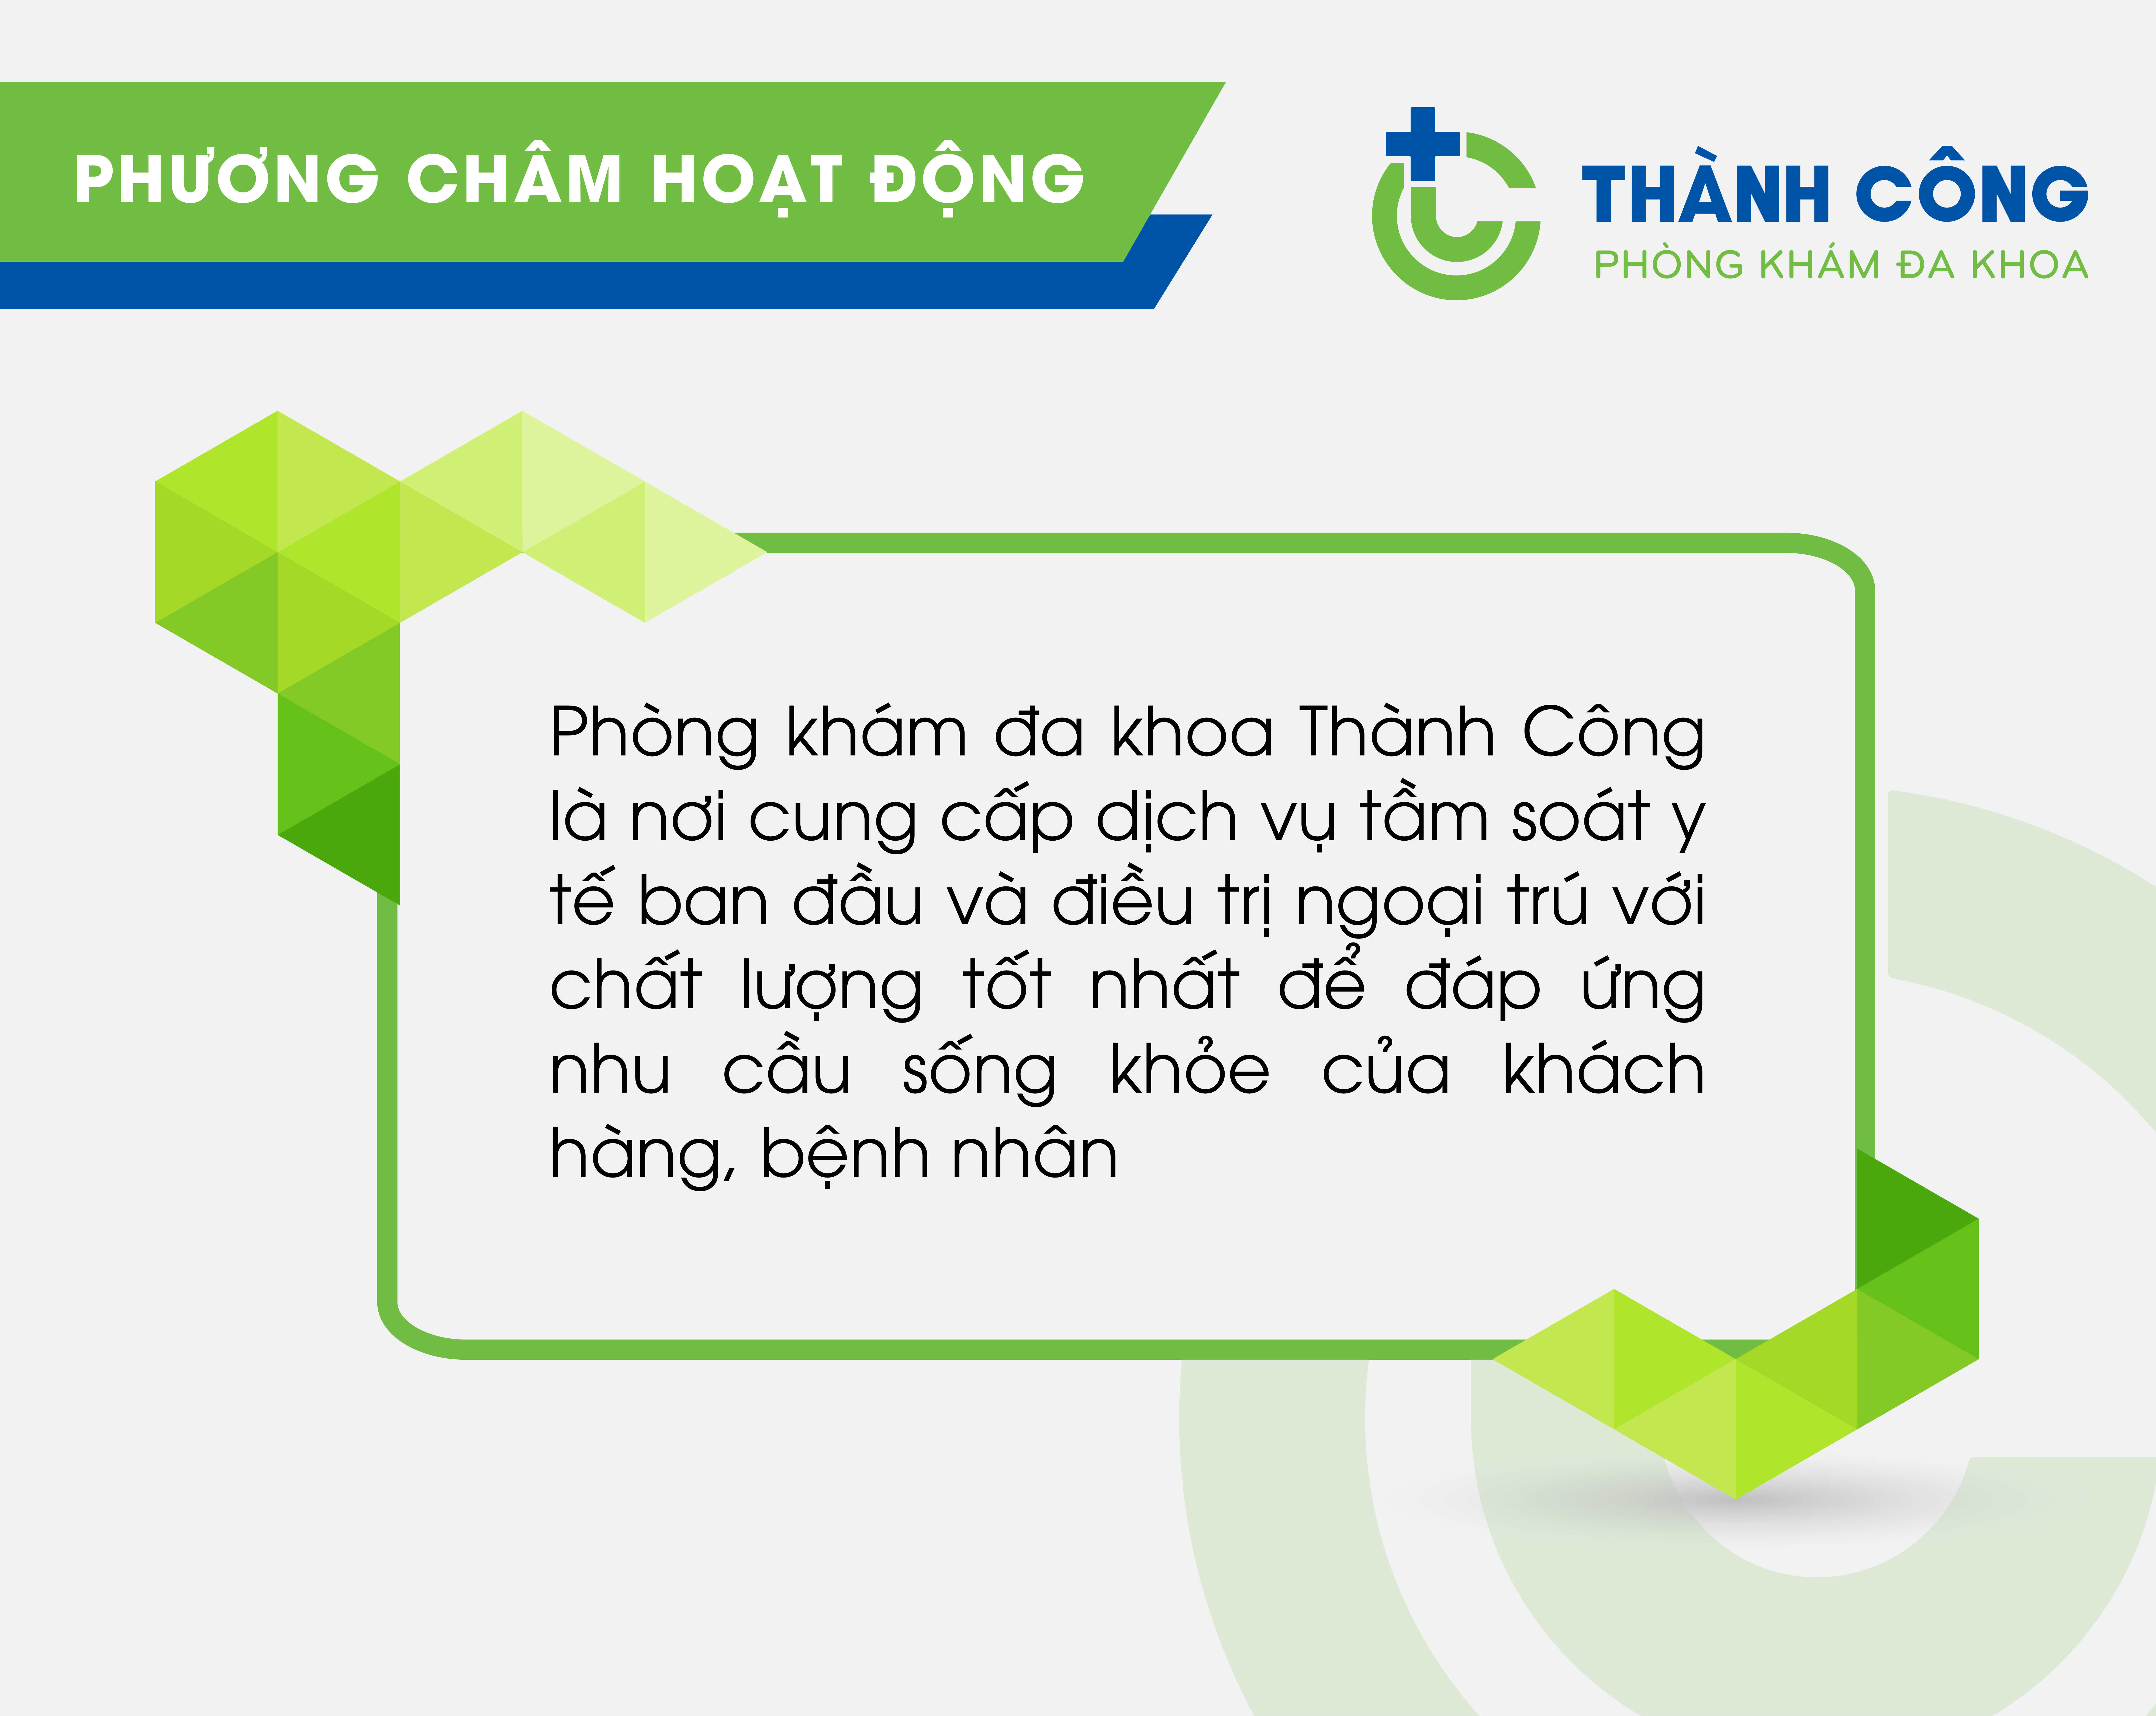 Phuong cham hoat dong